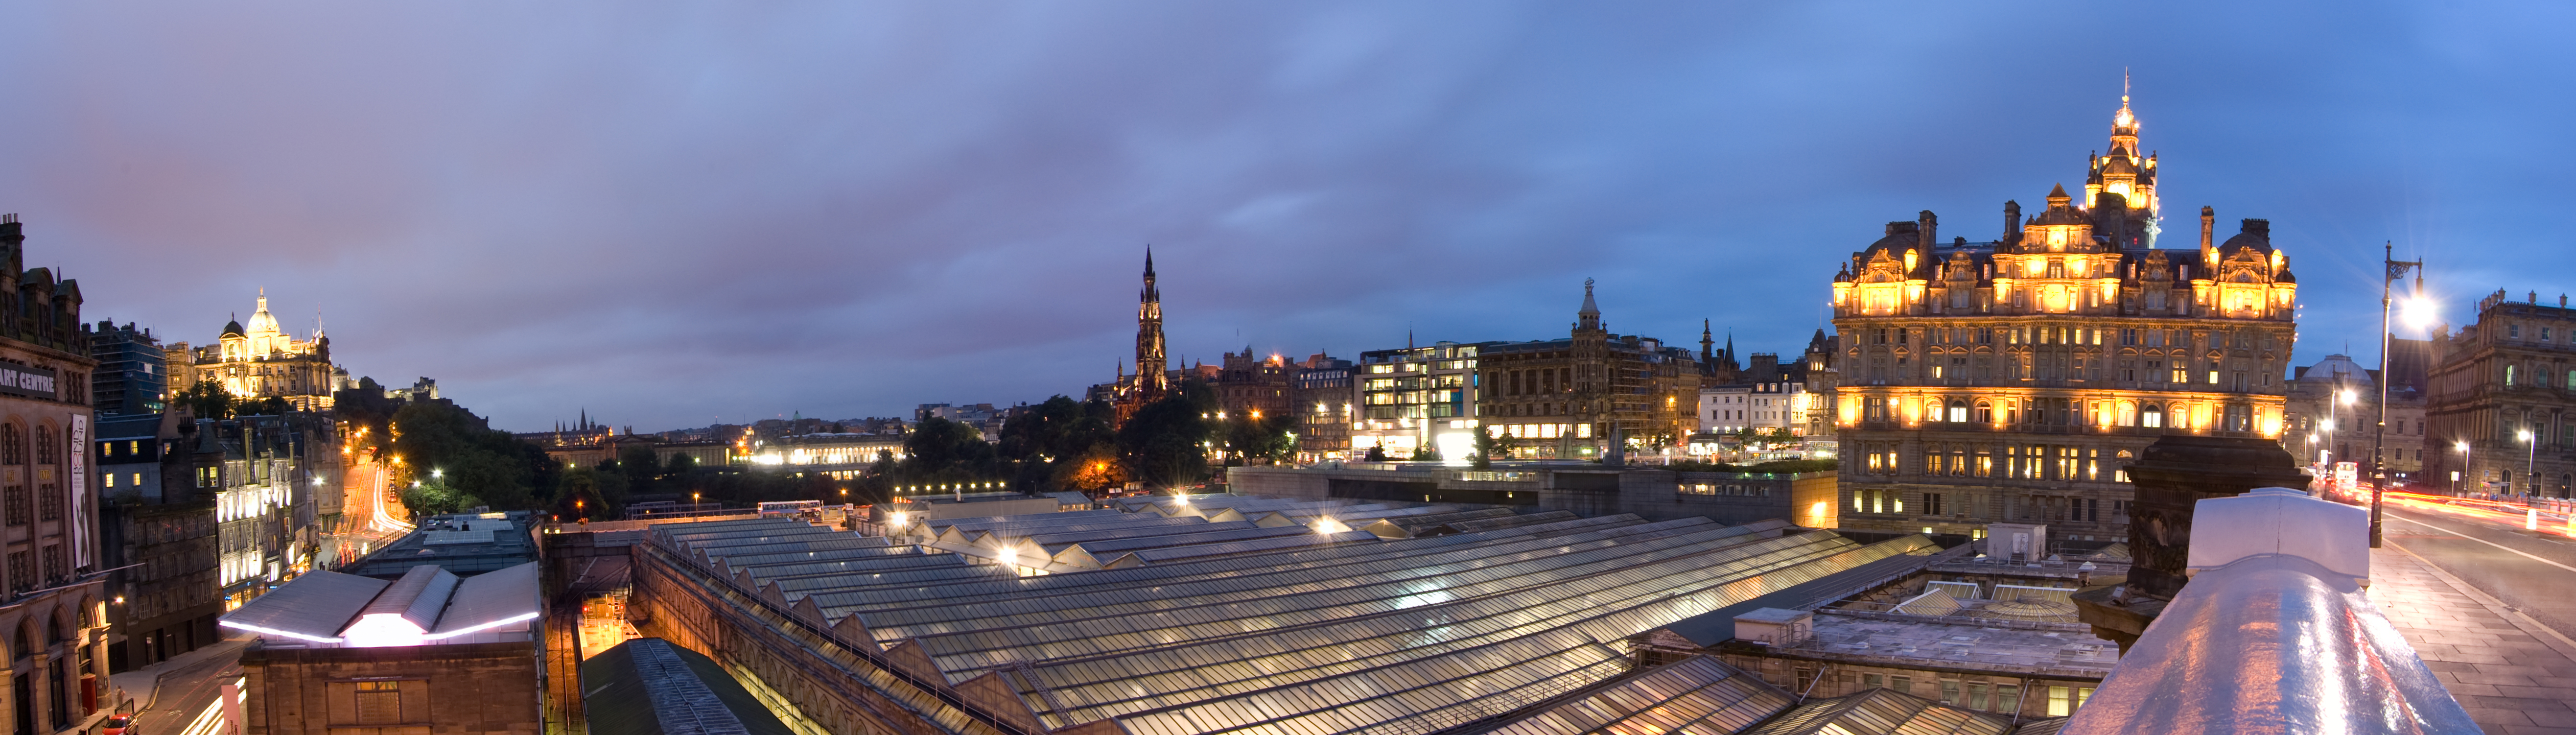 Alloggiare a Edimburgo